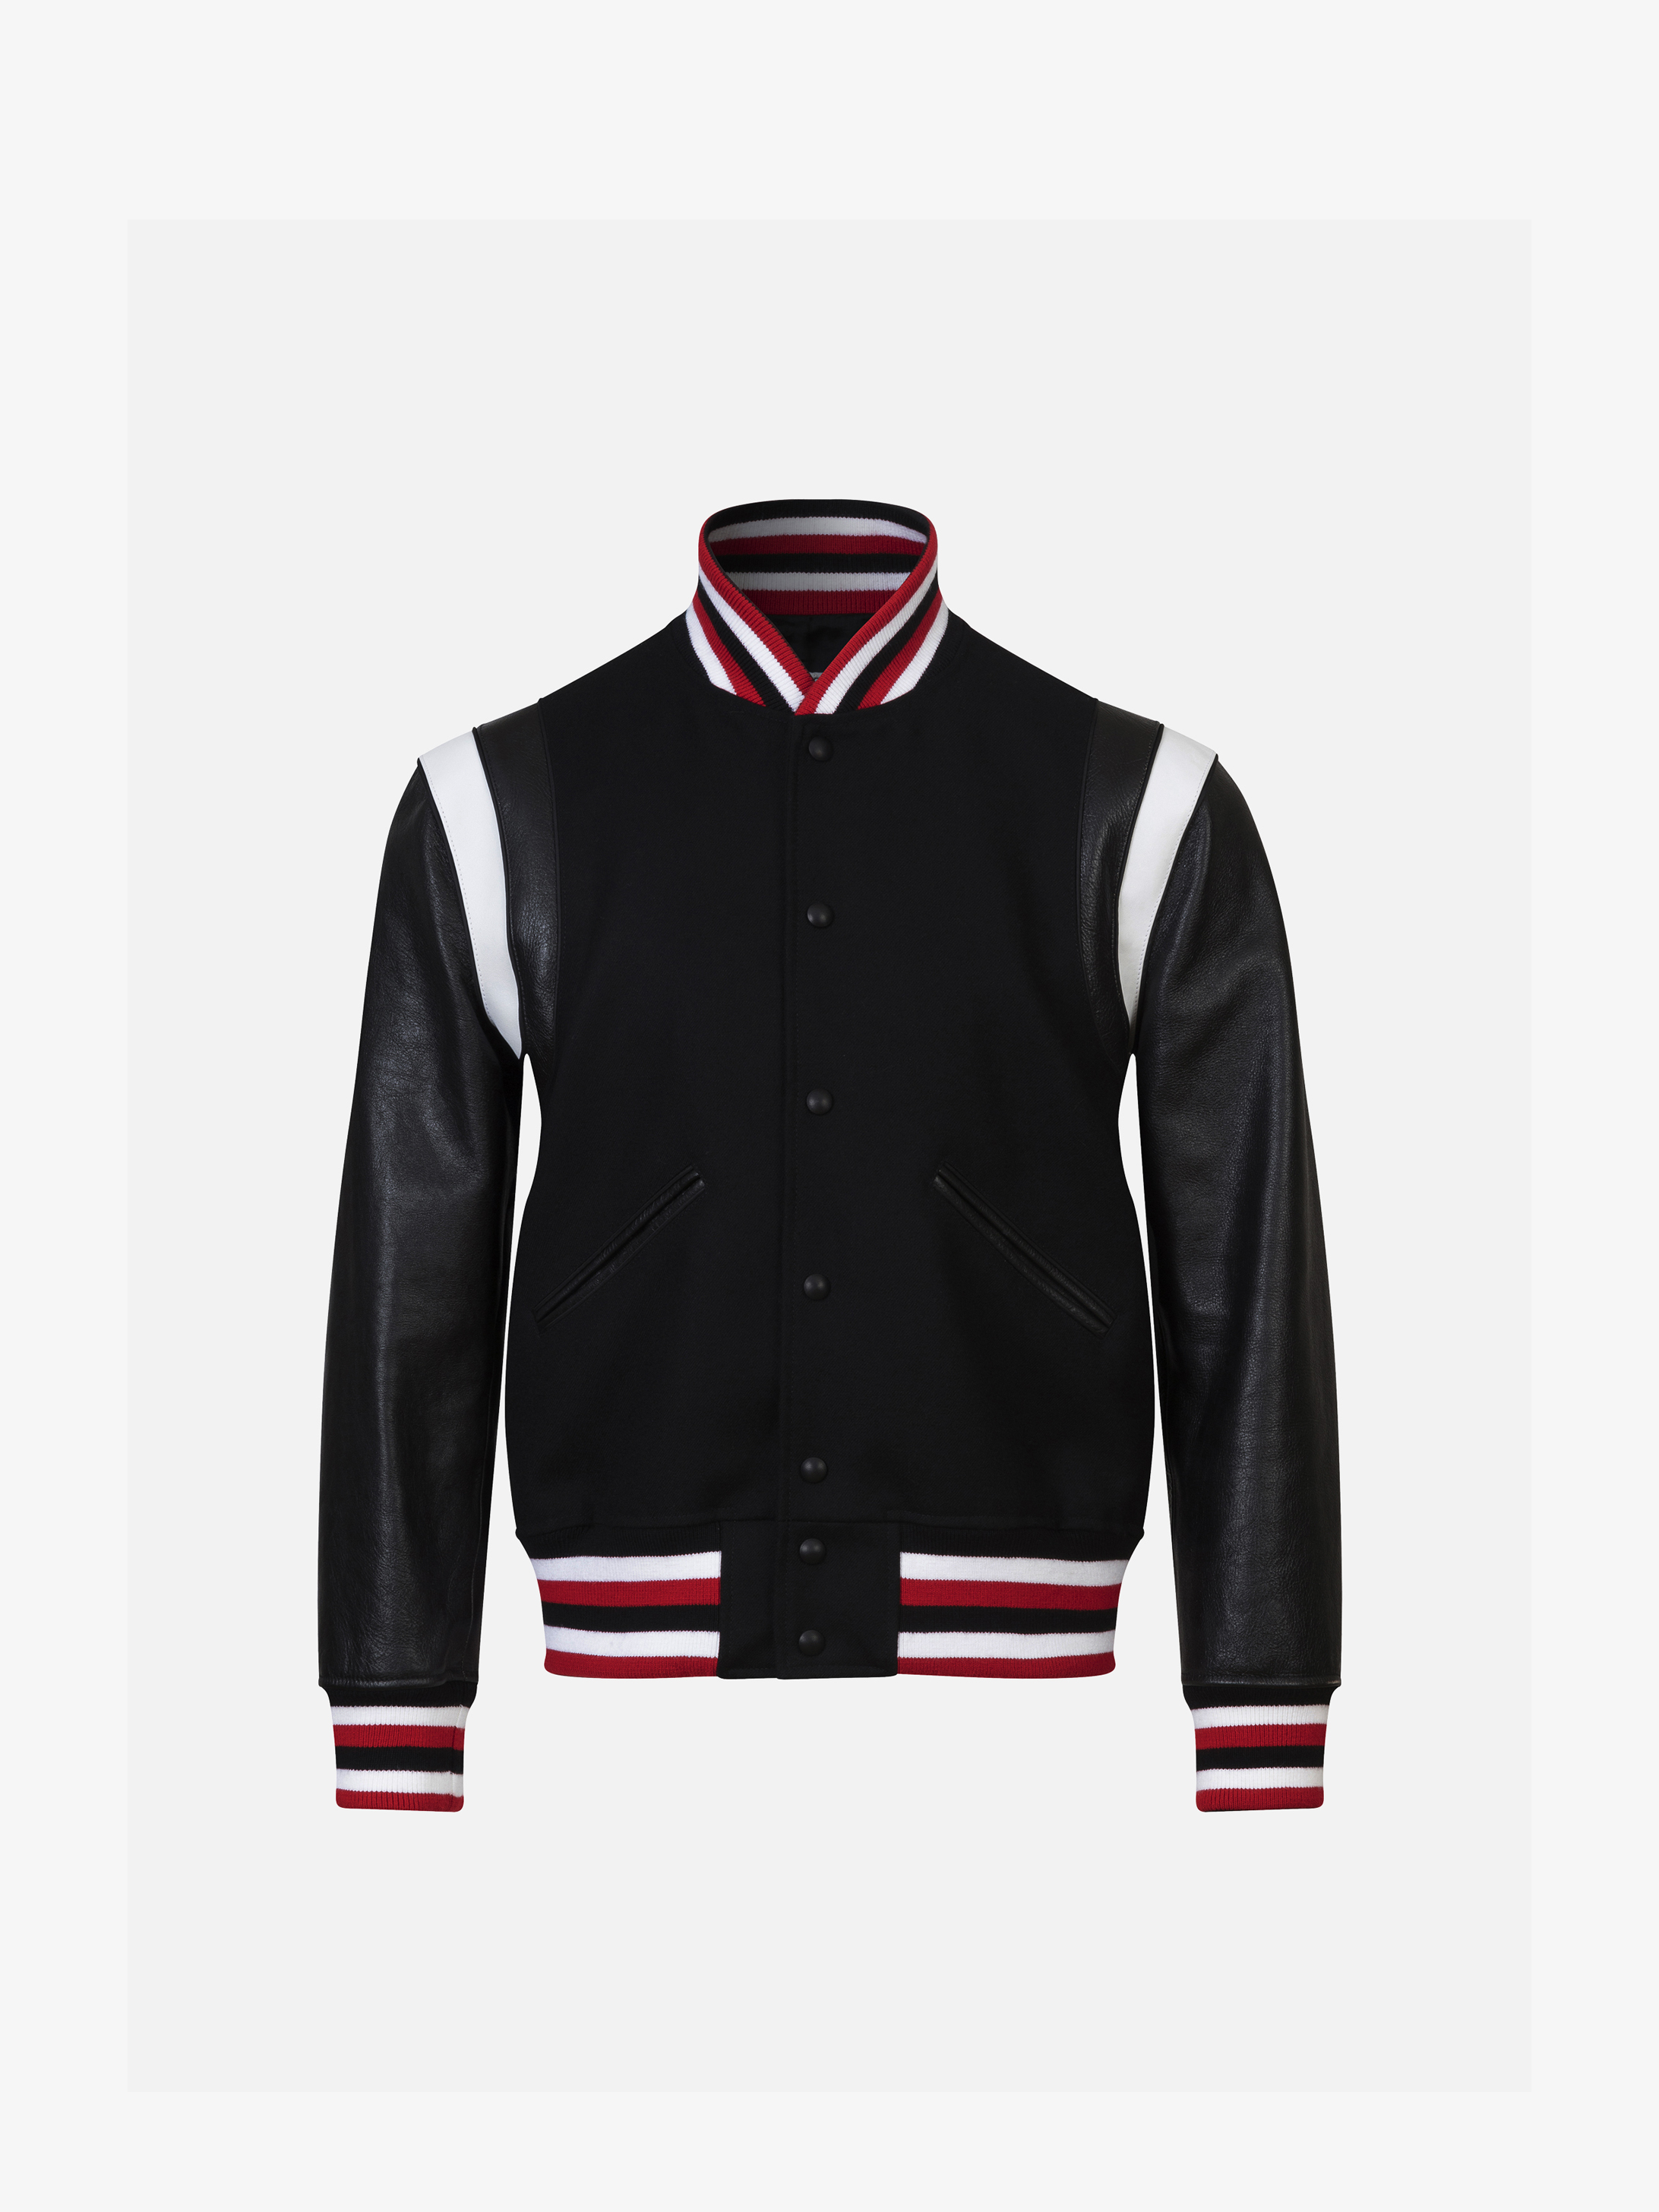 GIVENCHY PARIS logo bomber jacket in wool